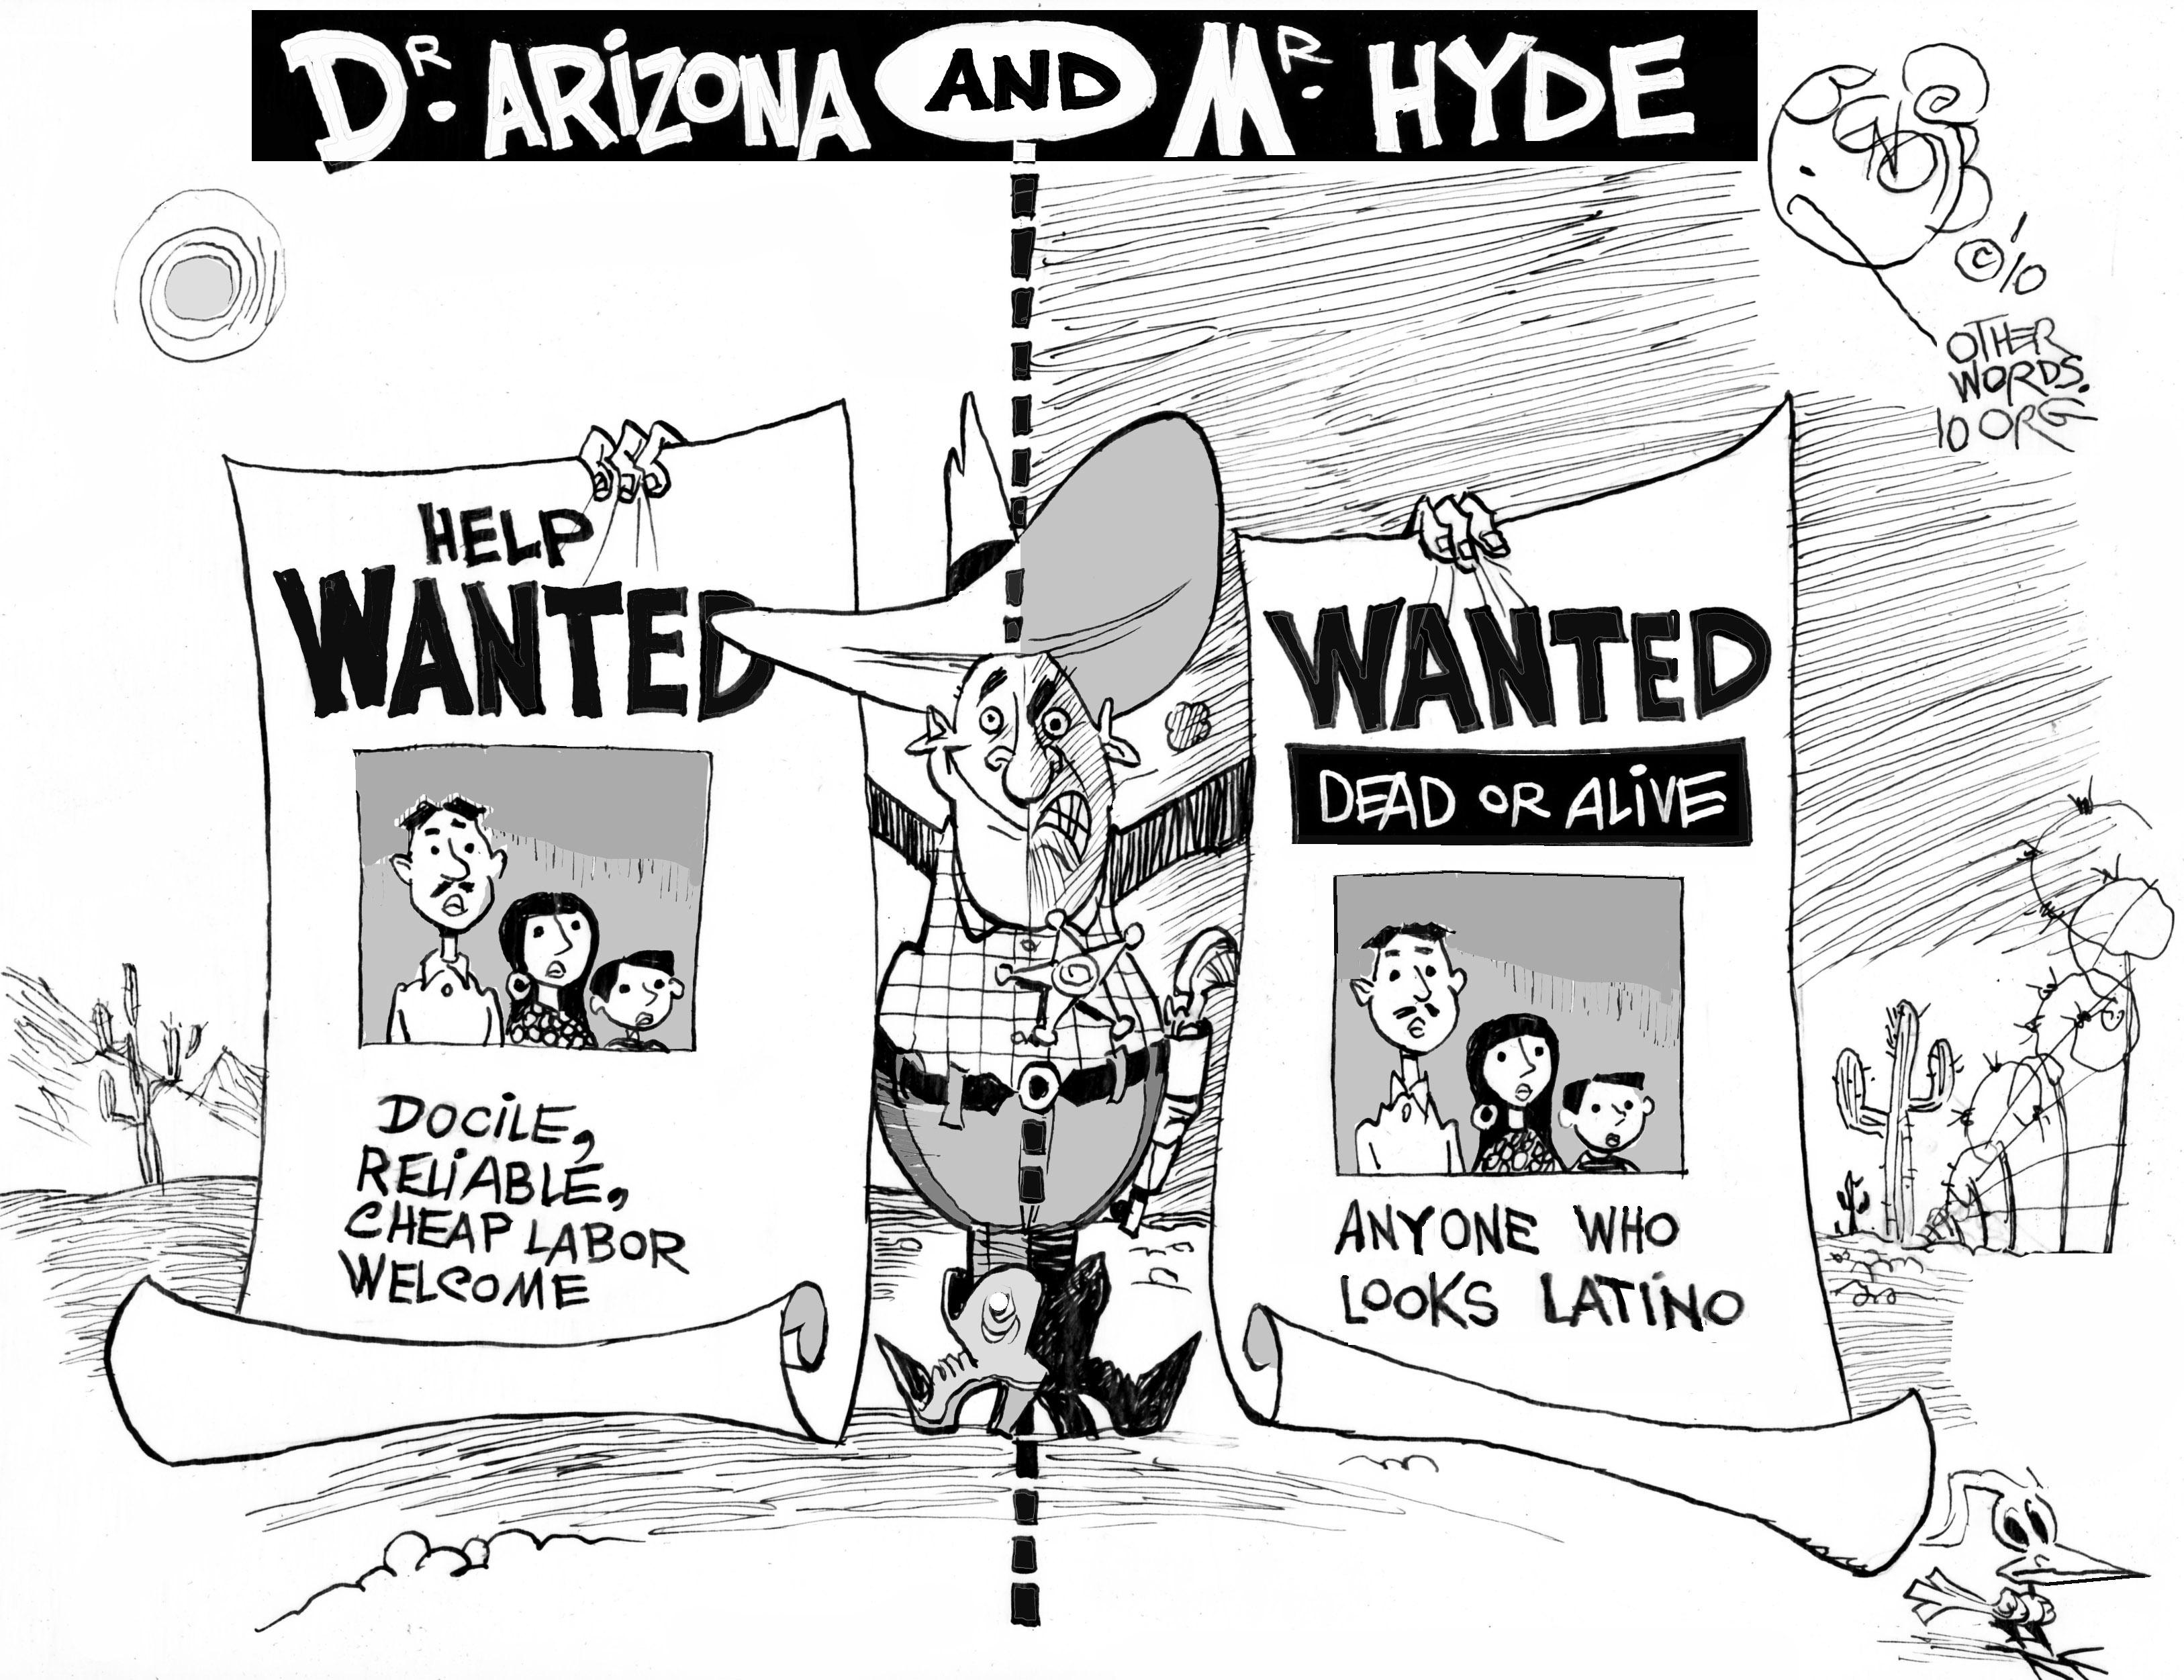 New Law Damages Arizona's Credibility